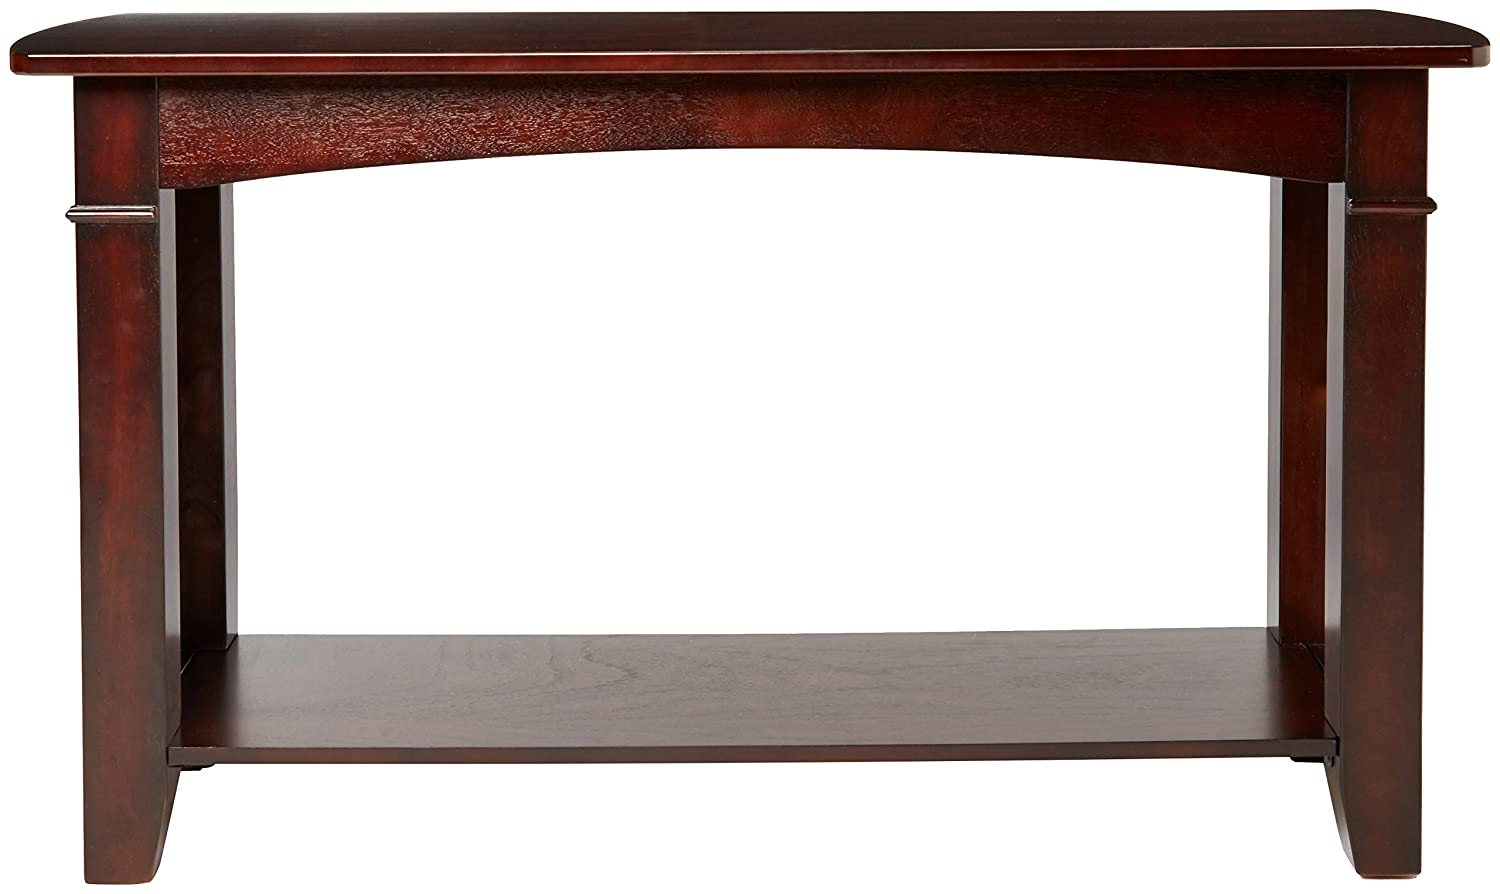 Amazon: Coaster Antique Country Style Sofa Table, Cherry Finish:  Kitchen & Dining